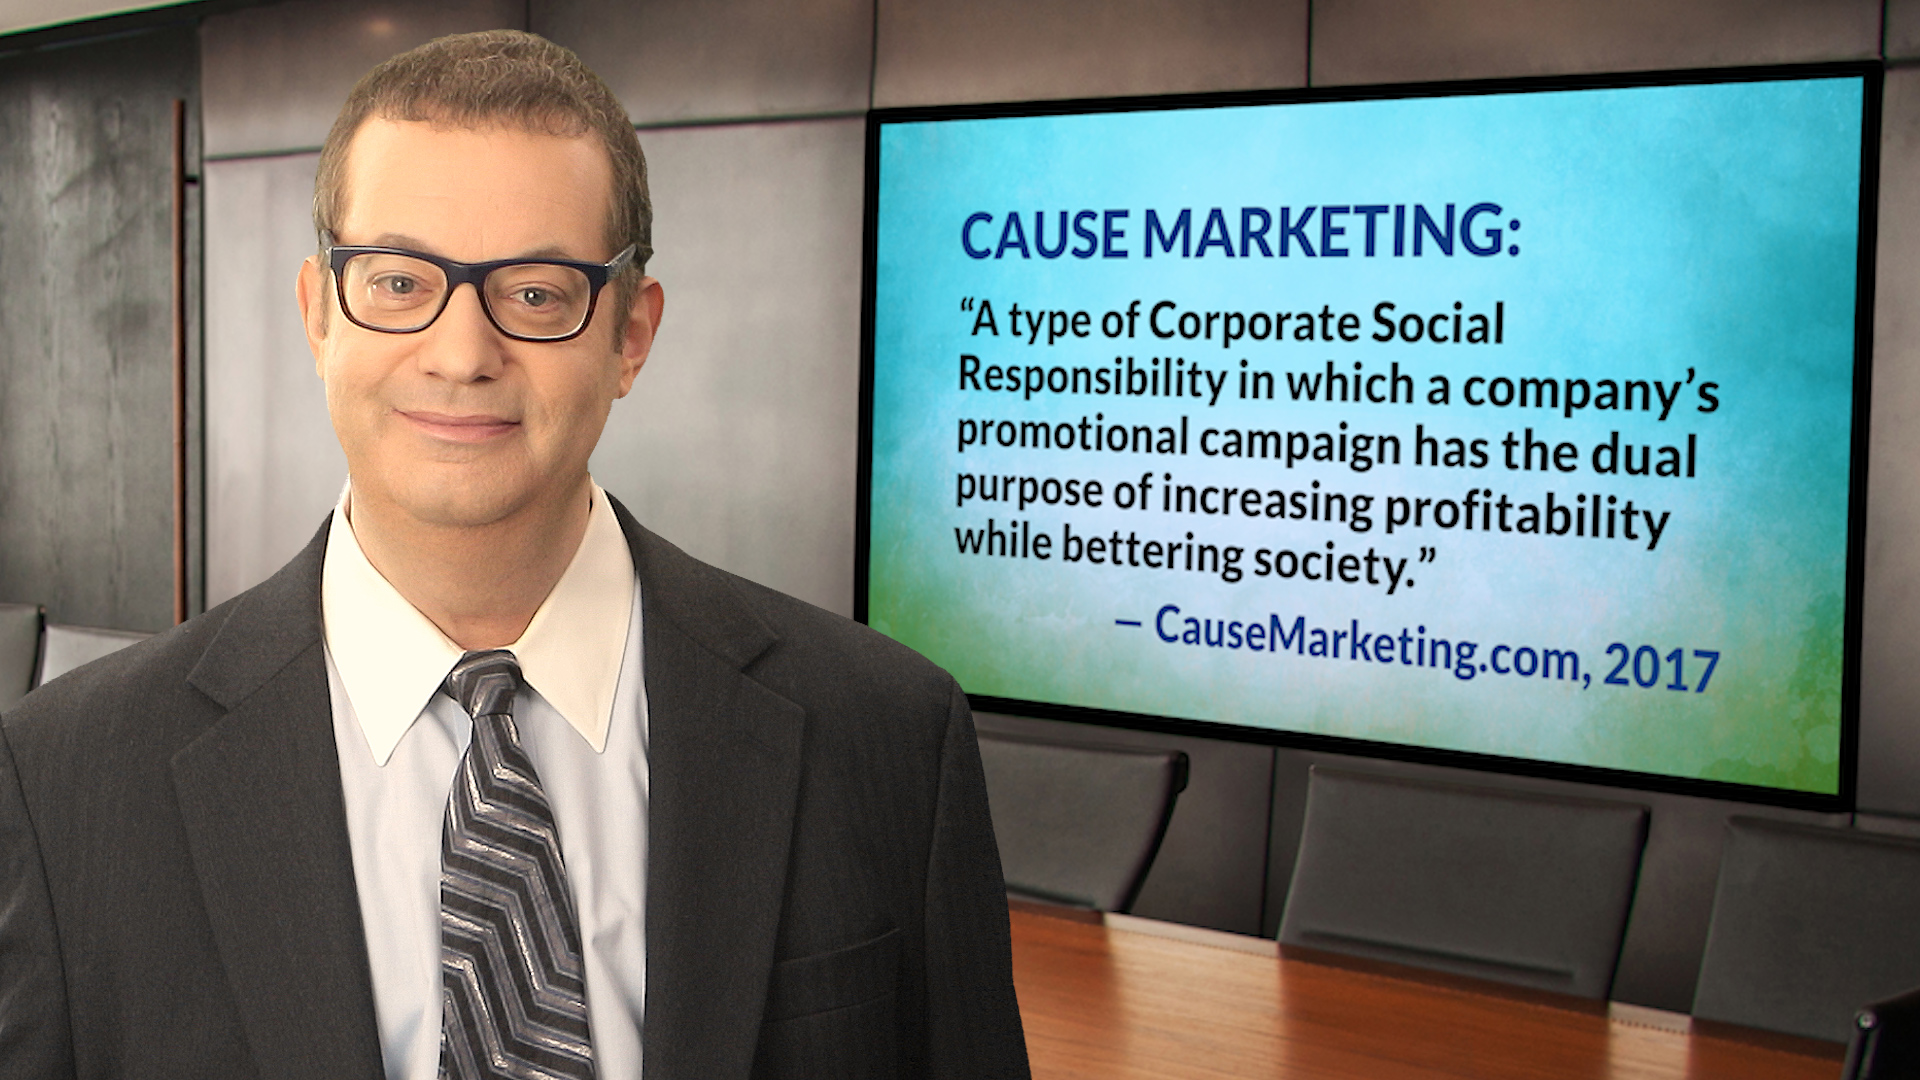 Cause Marketing Definition